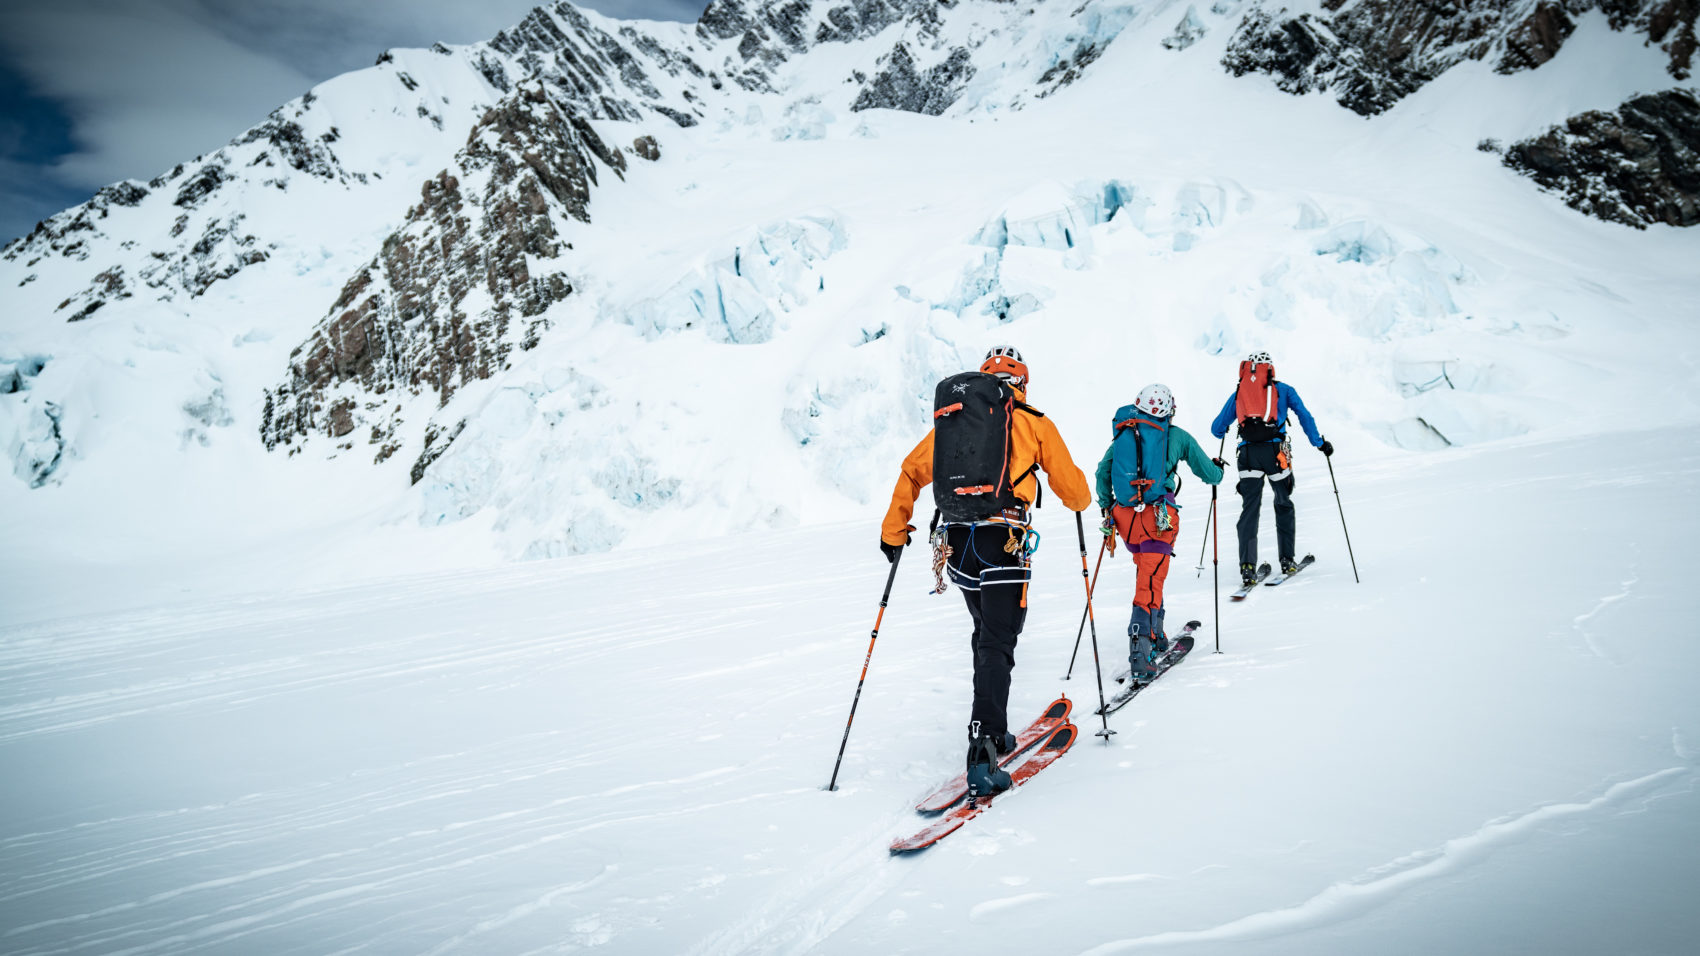 Skiing in the backcountry is committing.